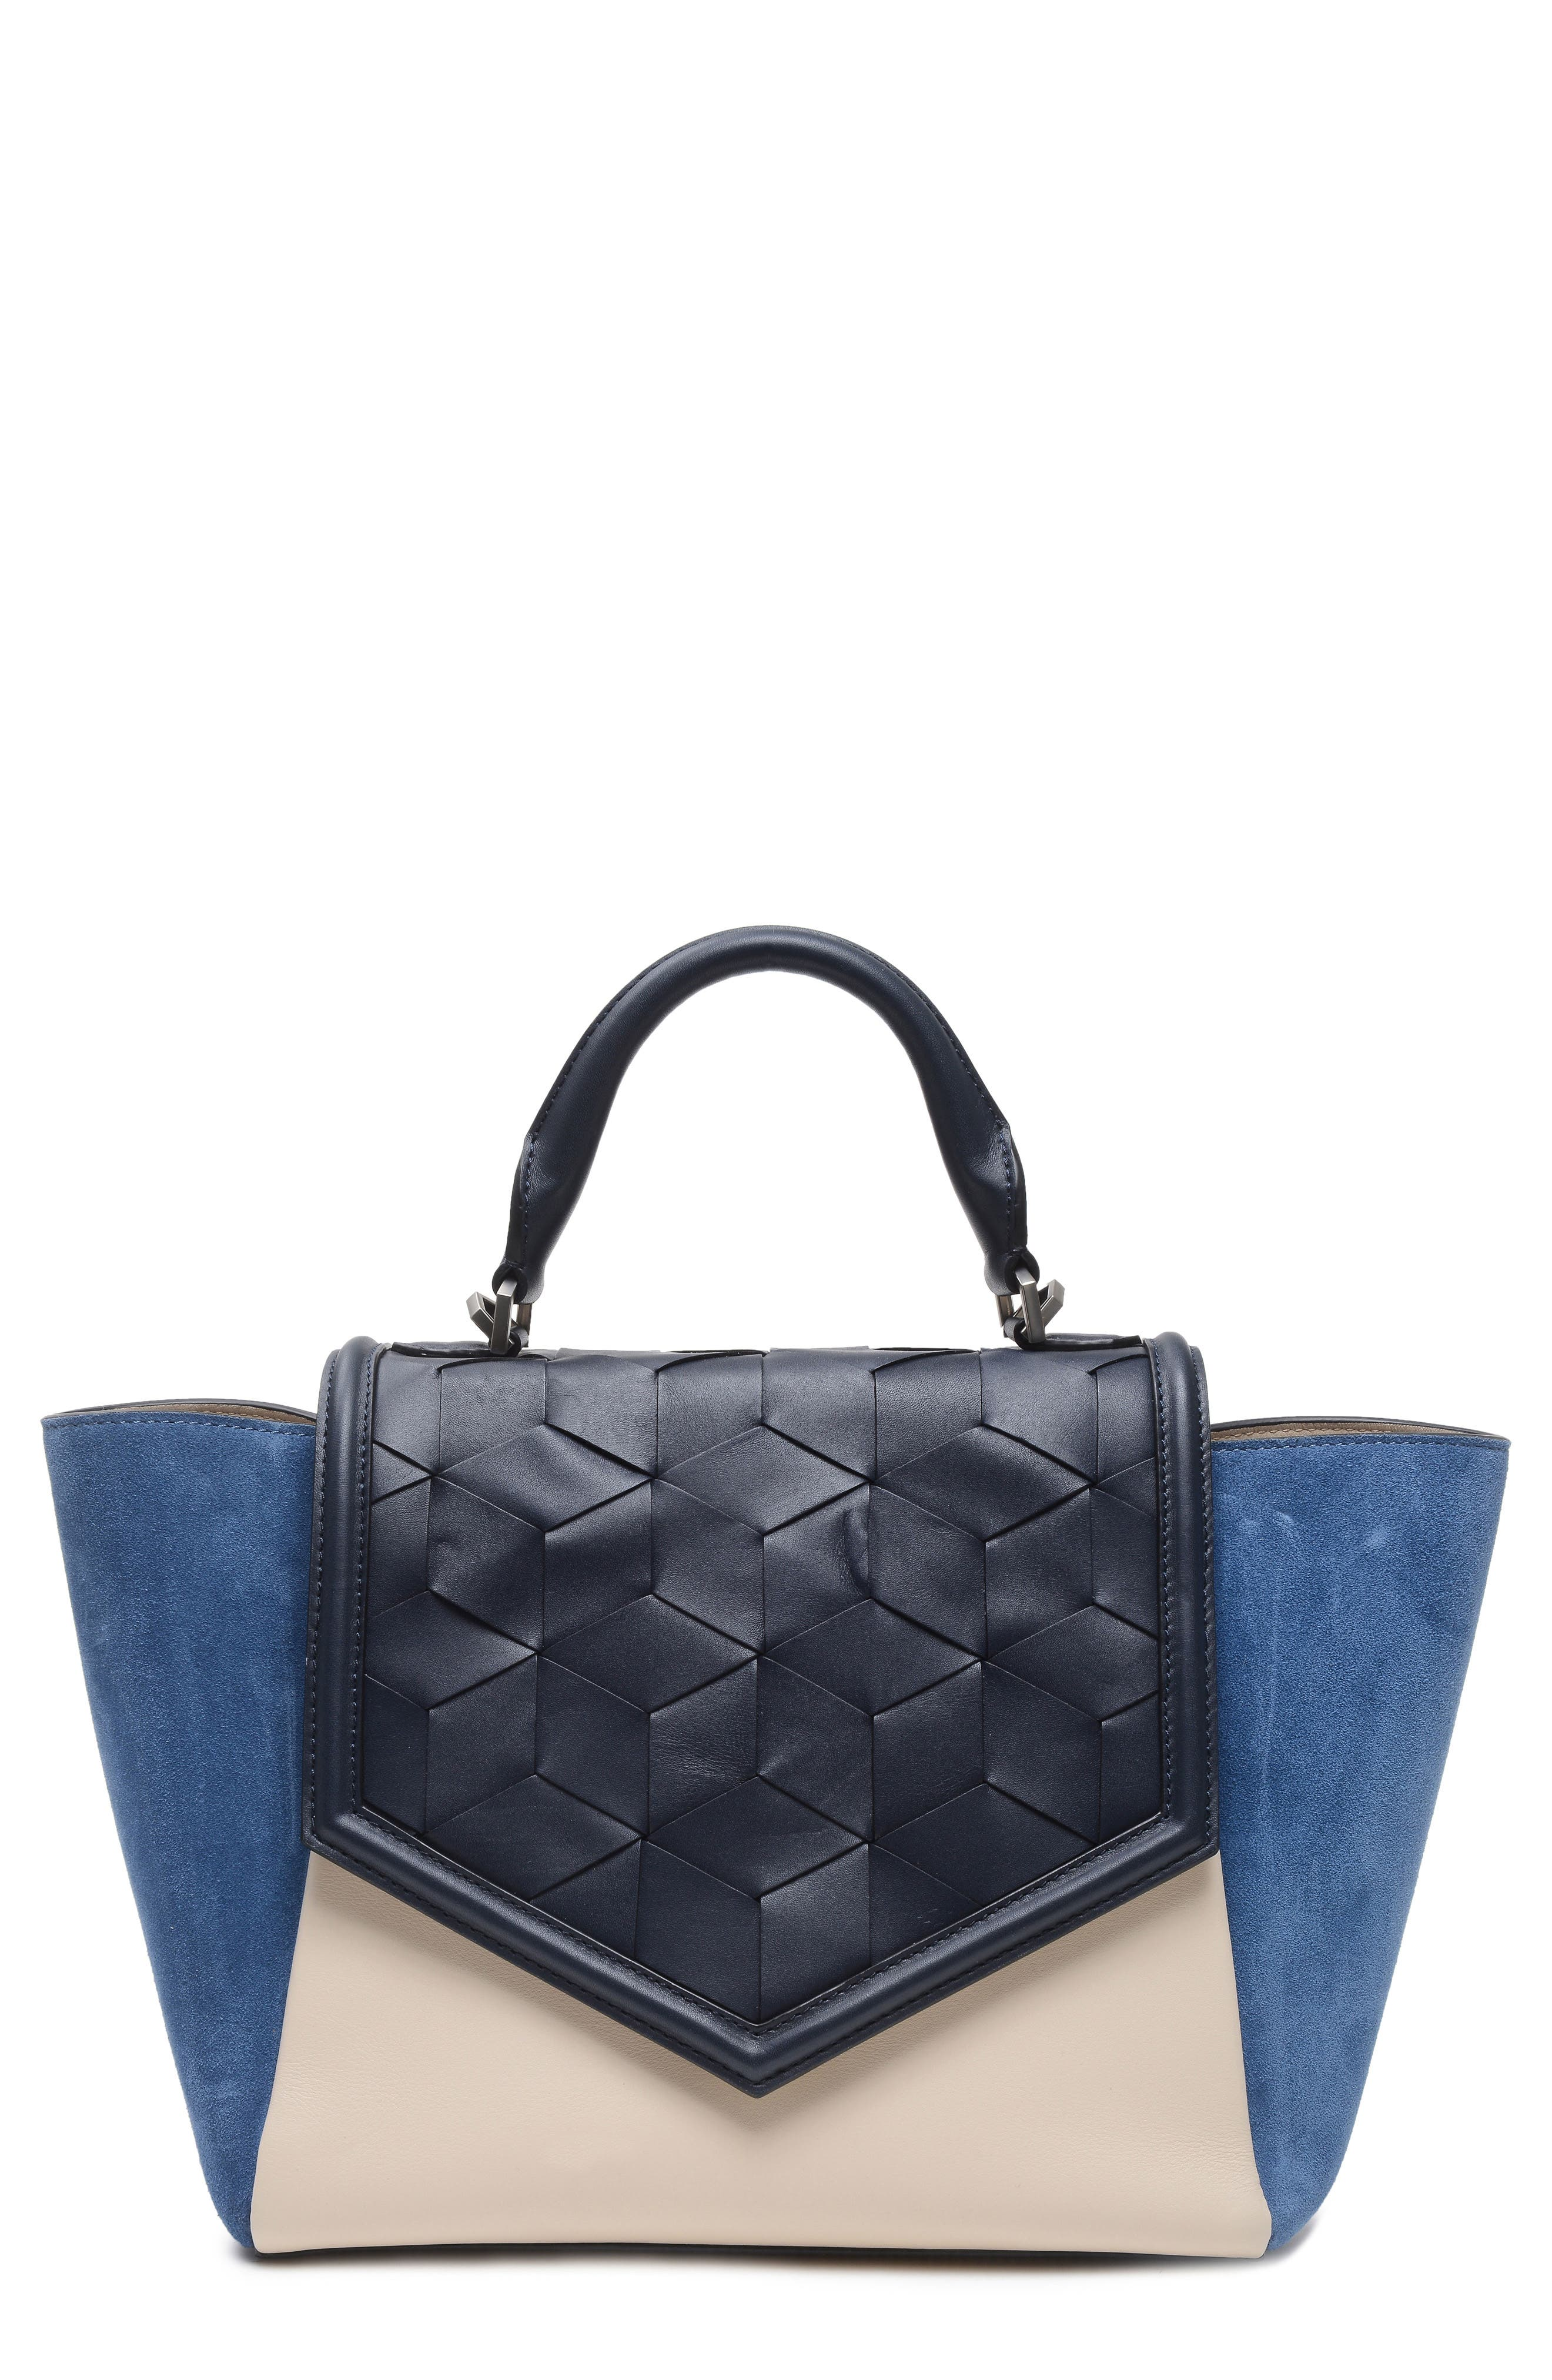 WELDEN SAUNTER CALFSKIN LEATHER TOP HANDLE SATCHEL - BLUE